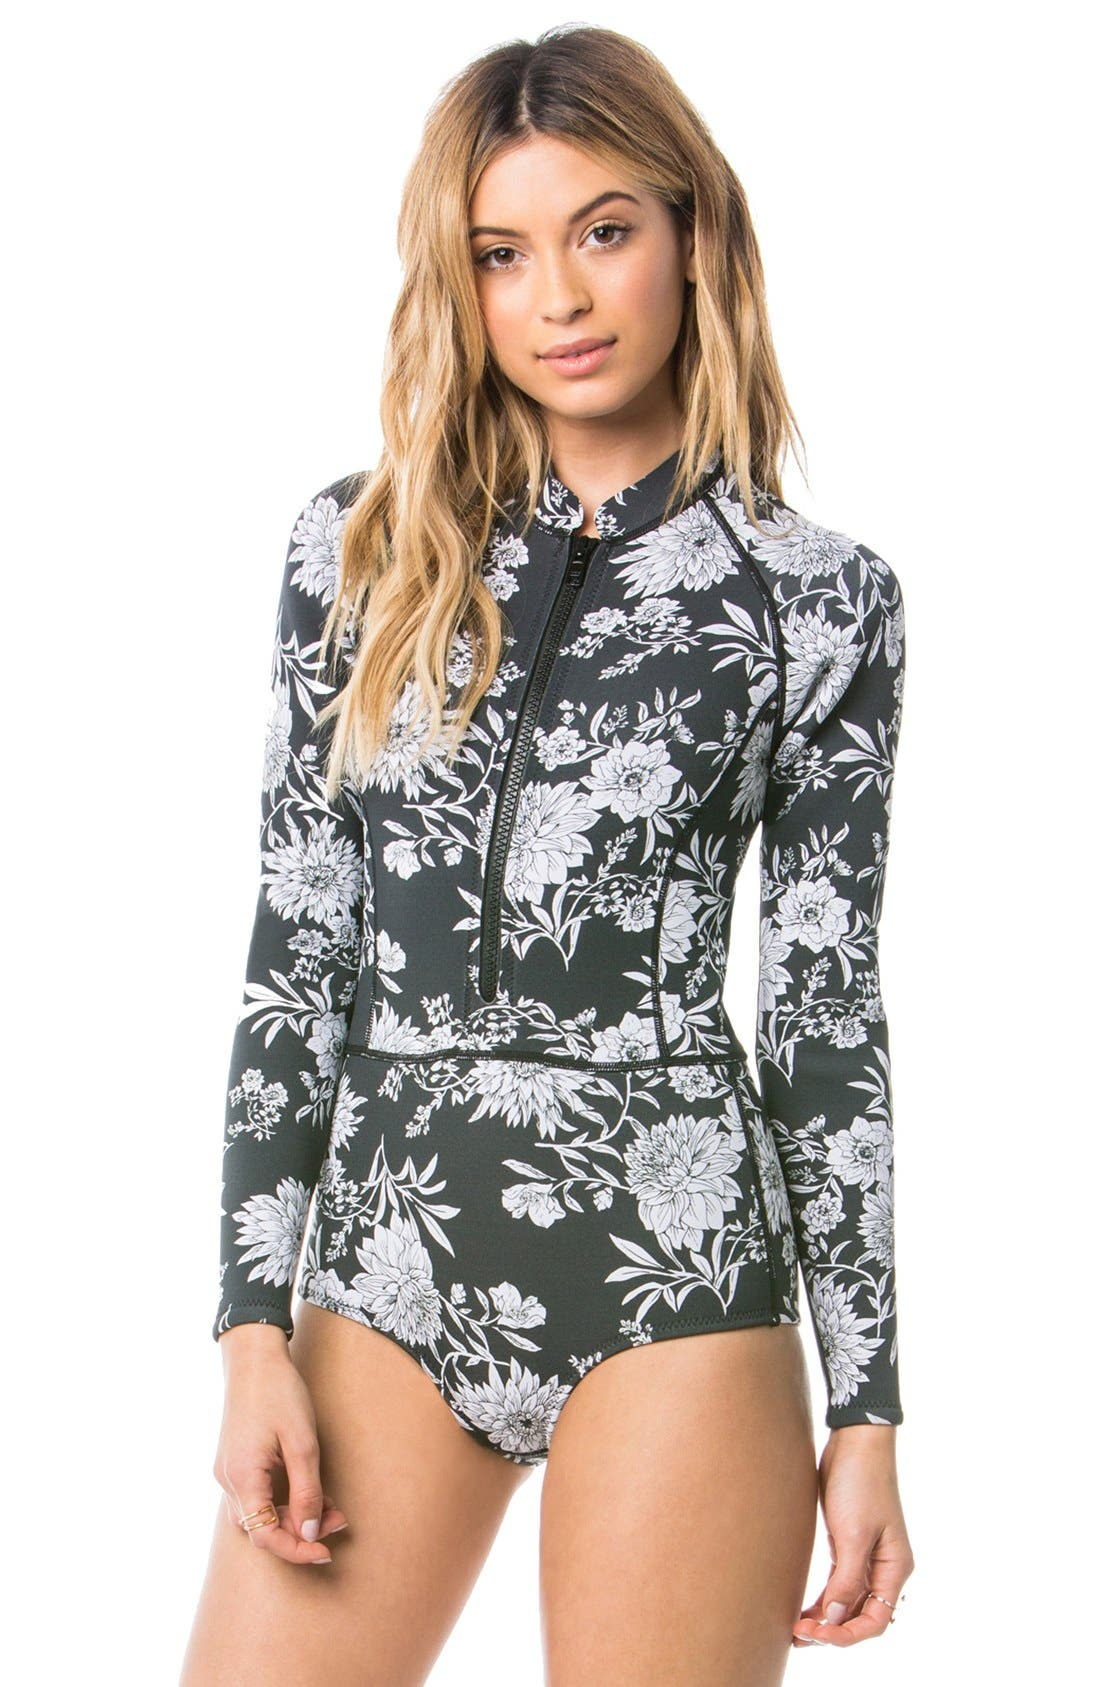 Alternate Image 1 Selected - Amuse Society 'Makala' Floral Print Long Sleeve One-Piece Swimsuit